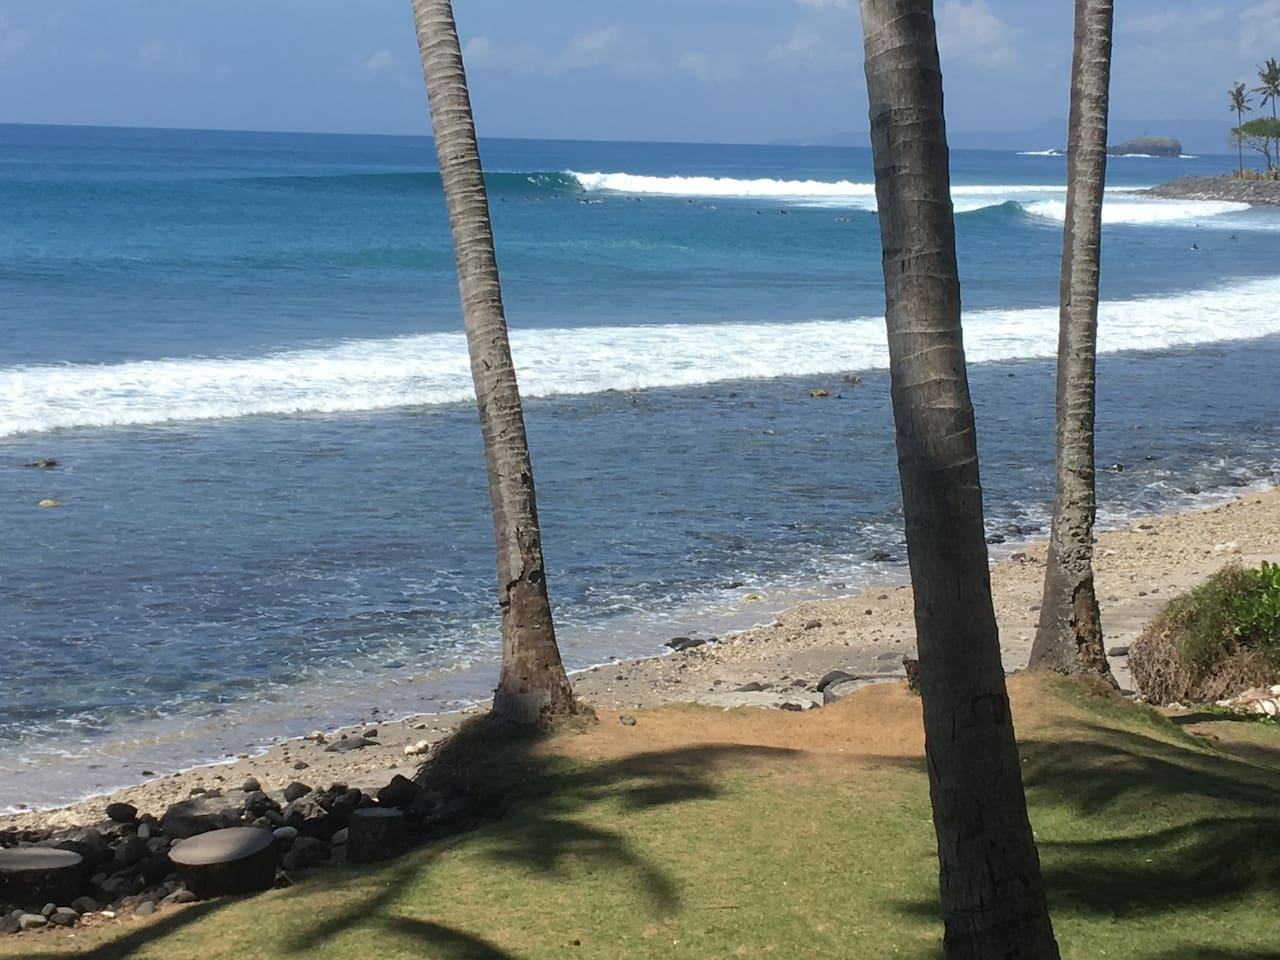 Jari Surf Beach 5 minutes by motorbike or car also known as Magic Point .It has a right hand surf break